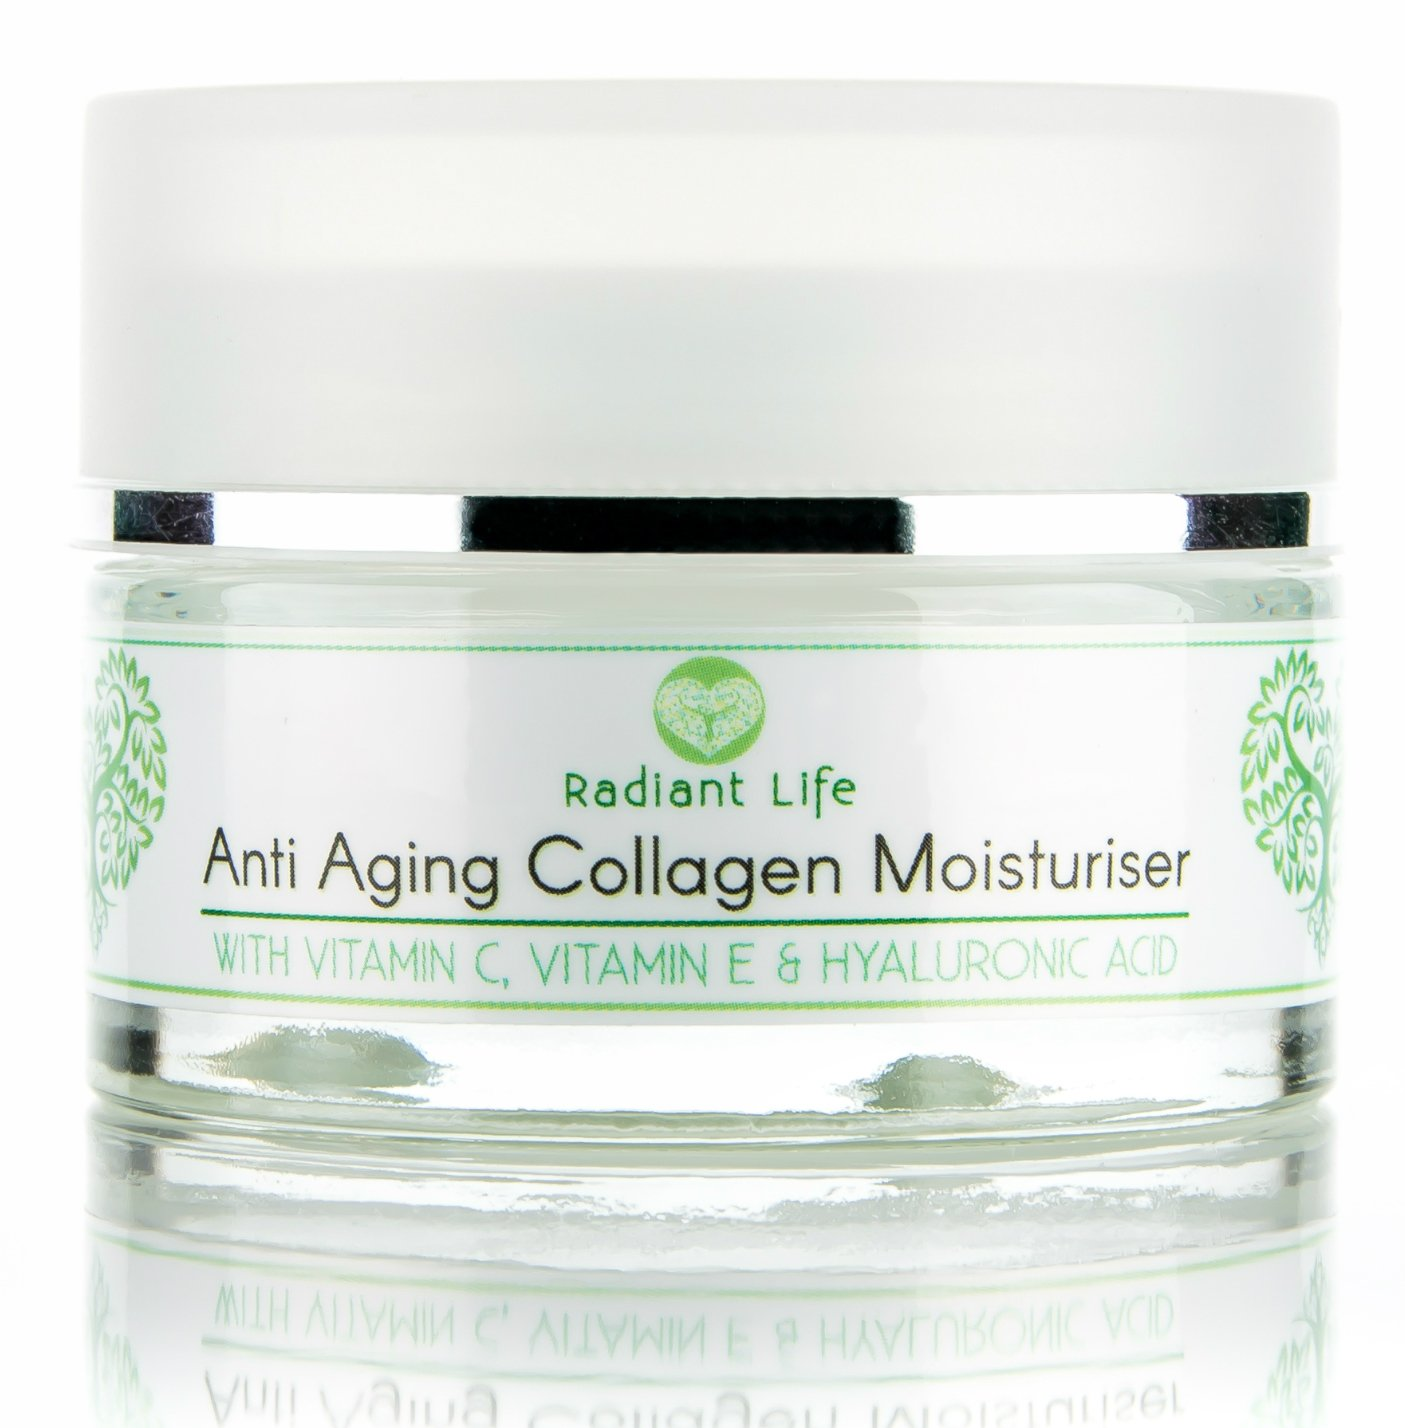 Anti Aging Moisturiser Night Cream - with Marine Collagen, Peptides, Vitamin E, Vitamin C and Hyaluronic Acid - The Best Anti Ageing Collagen Booster for Face - Reduces Wrinkles, Lifting, Rejuvenating and Firming whilst Deeply Hydrating RLAACM